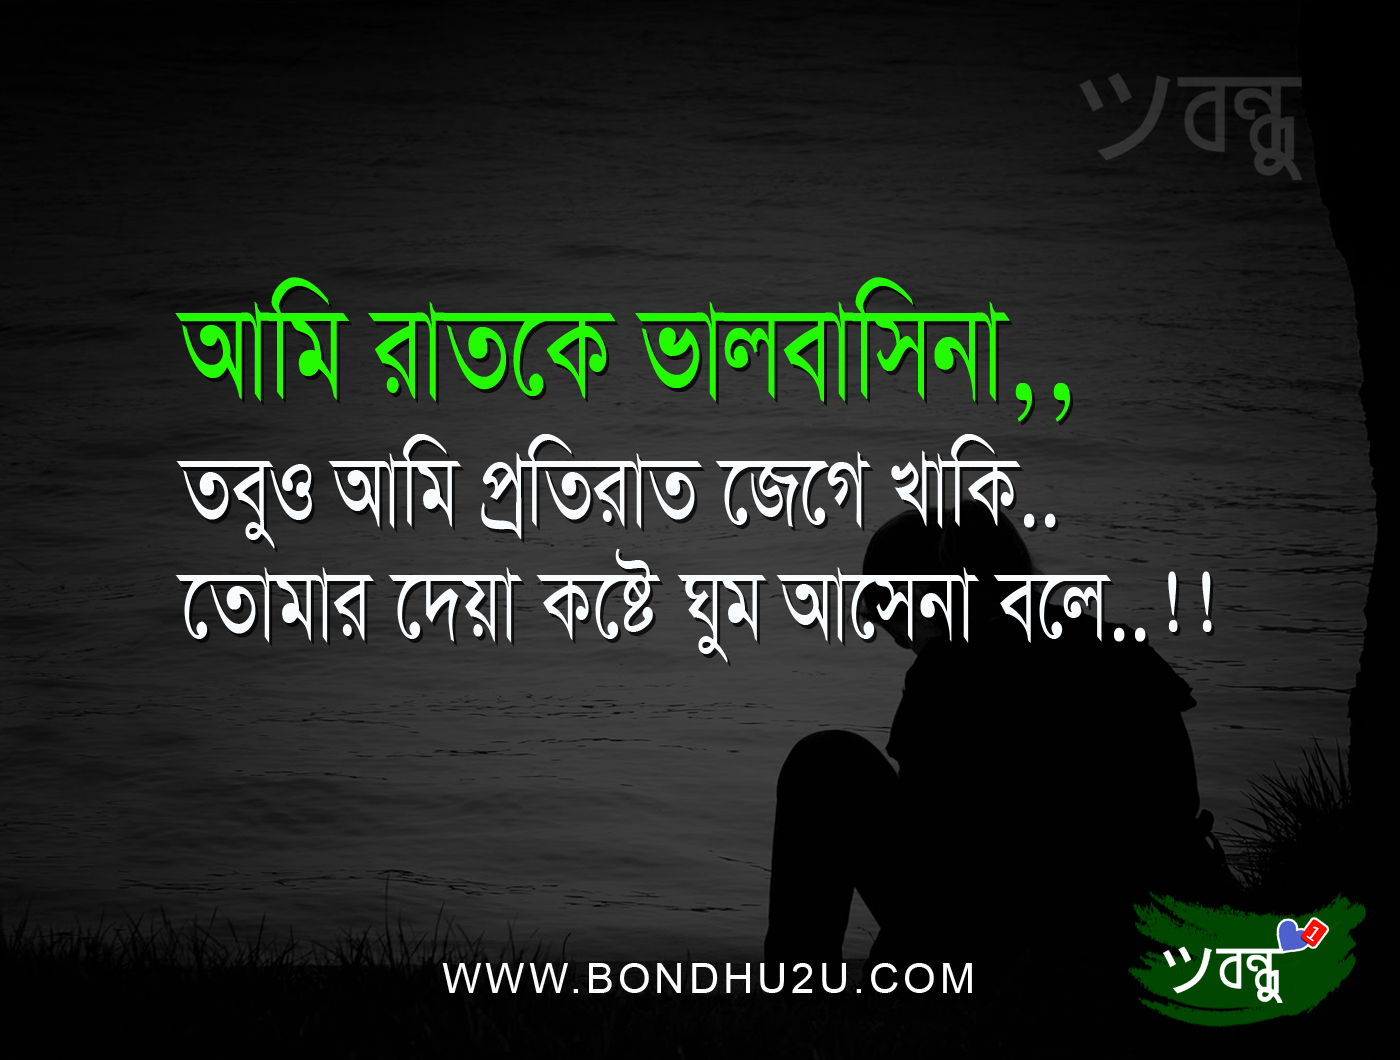 Drowing Sad Love Bangla: Sad Pic Sms In Bengali